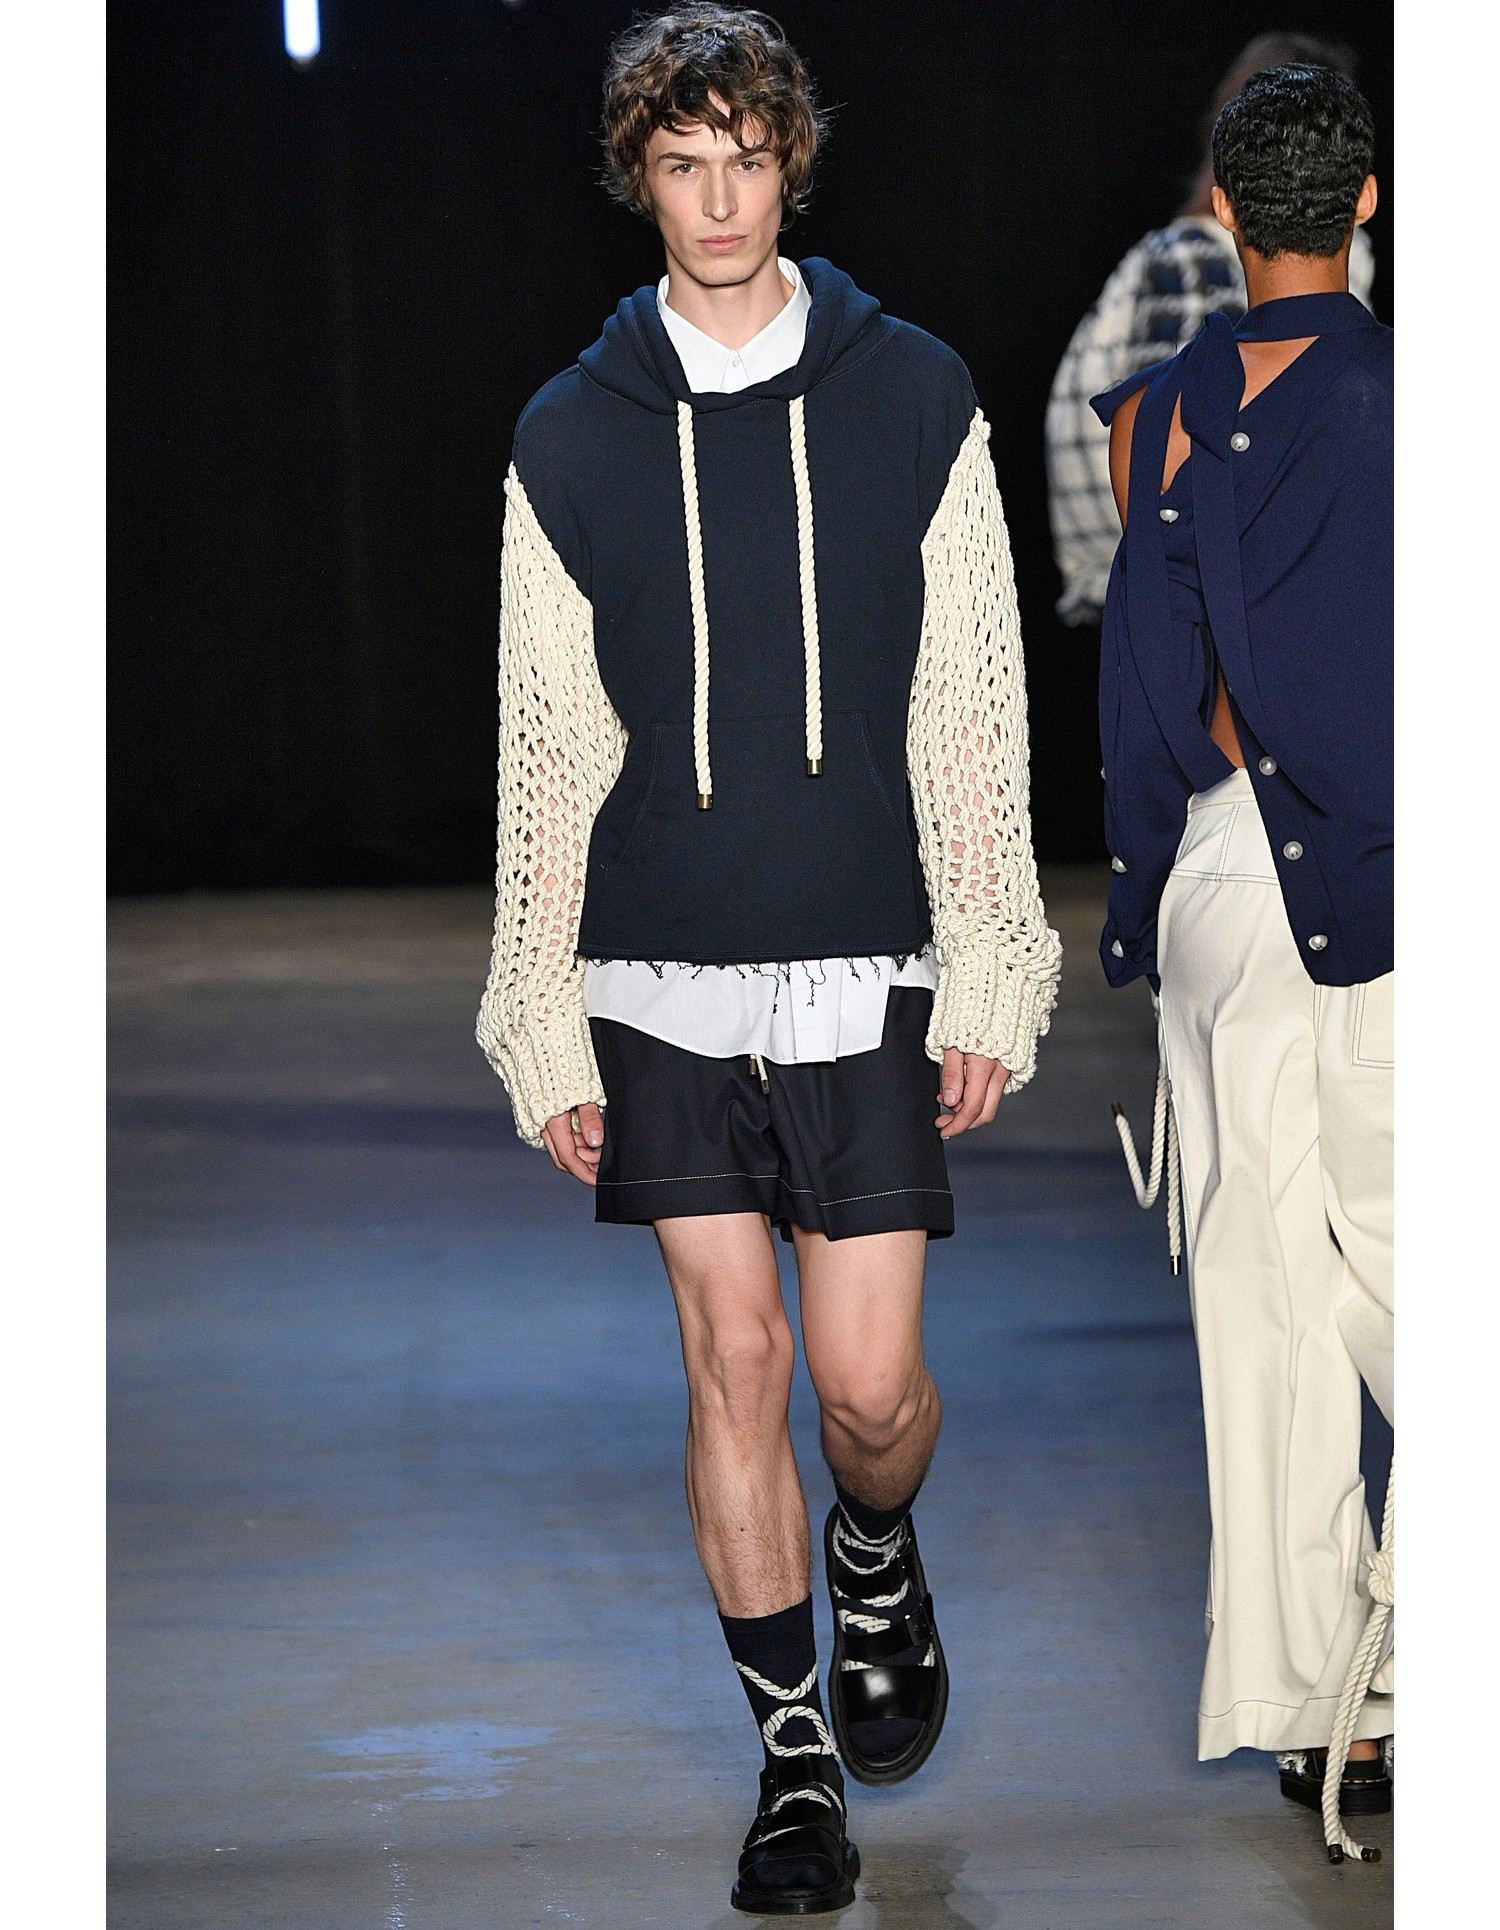 Monse Unisex Cropped Rope Hoodie on Runway Model